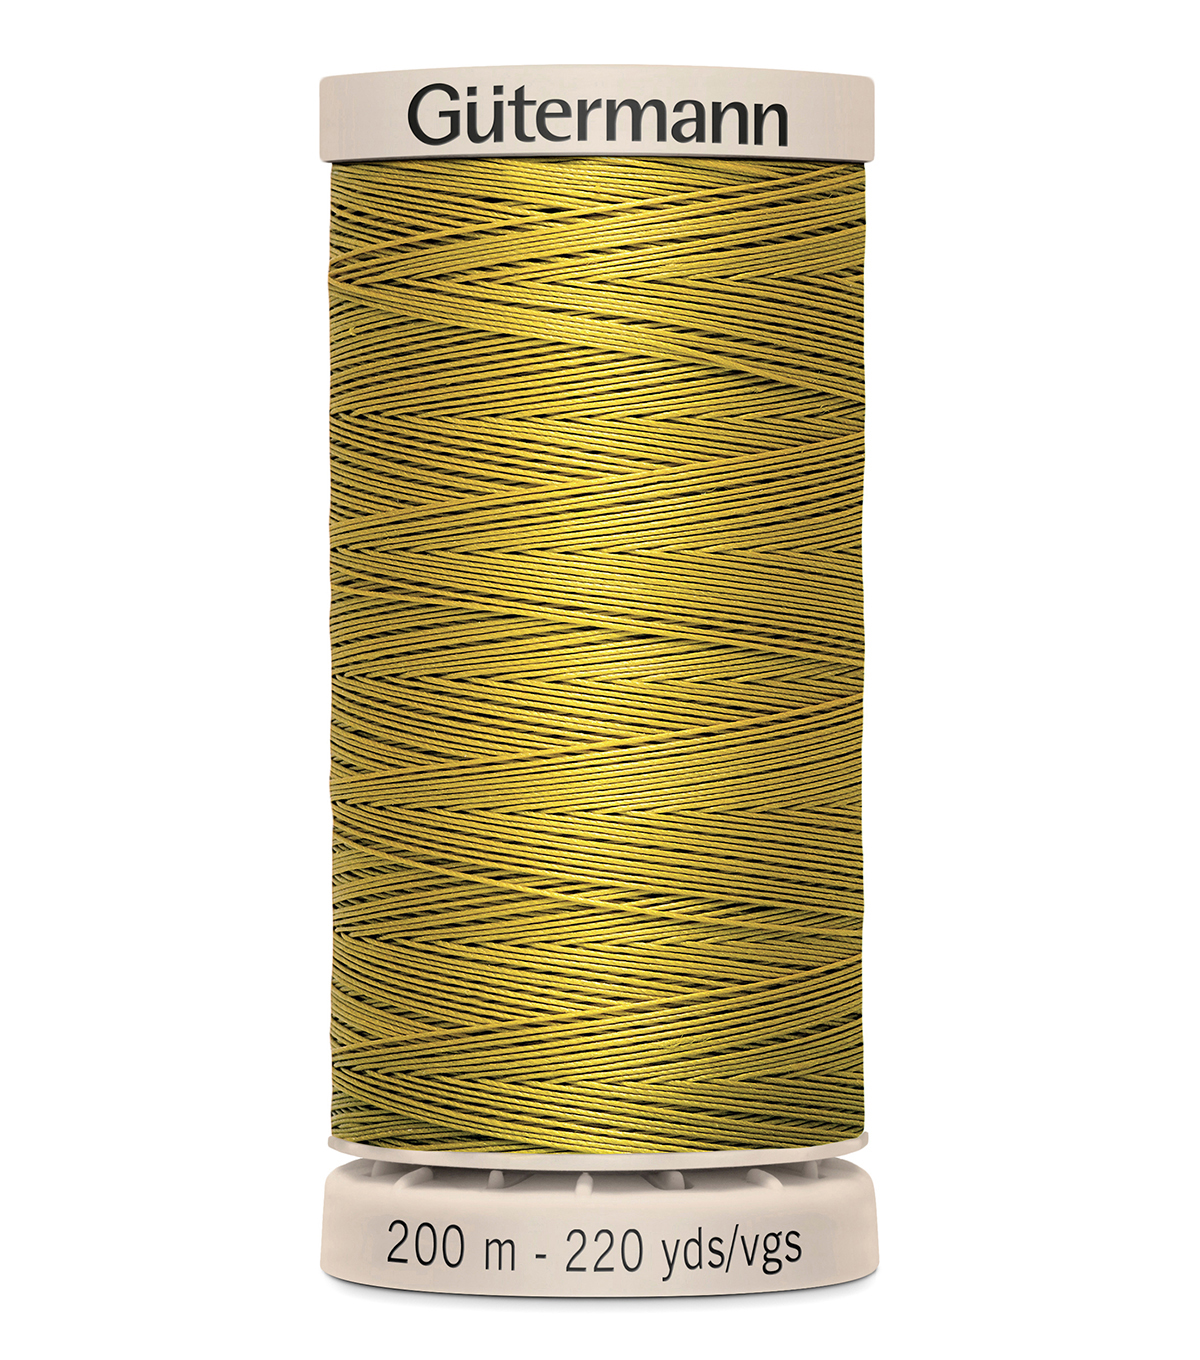 Gutermann Hand Quilting Thread 200 Meters (220 Yrds)-Primary, Old Gold #956